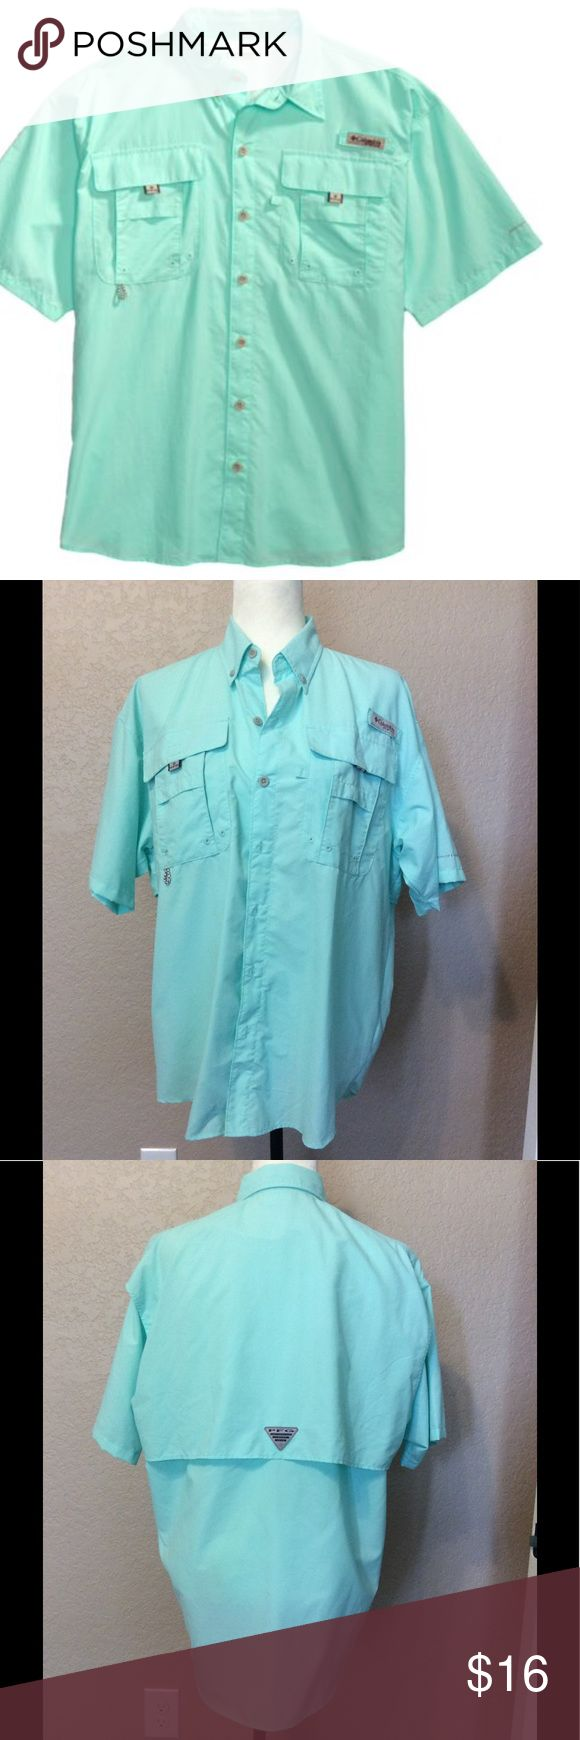 Men's Columbia Fishing Shirt Light blue/green in color. Worn once. In perfect condition. Size small. Columbia Tops